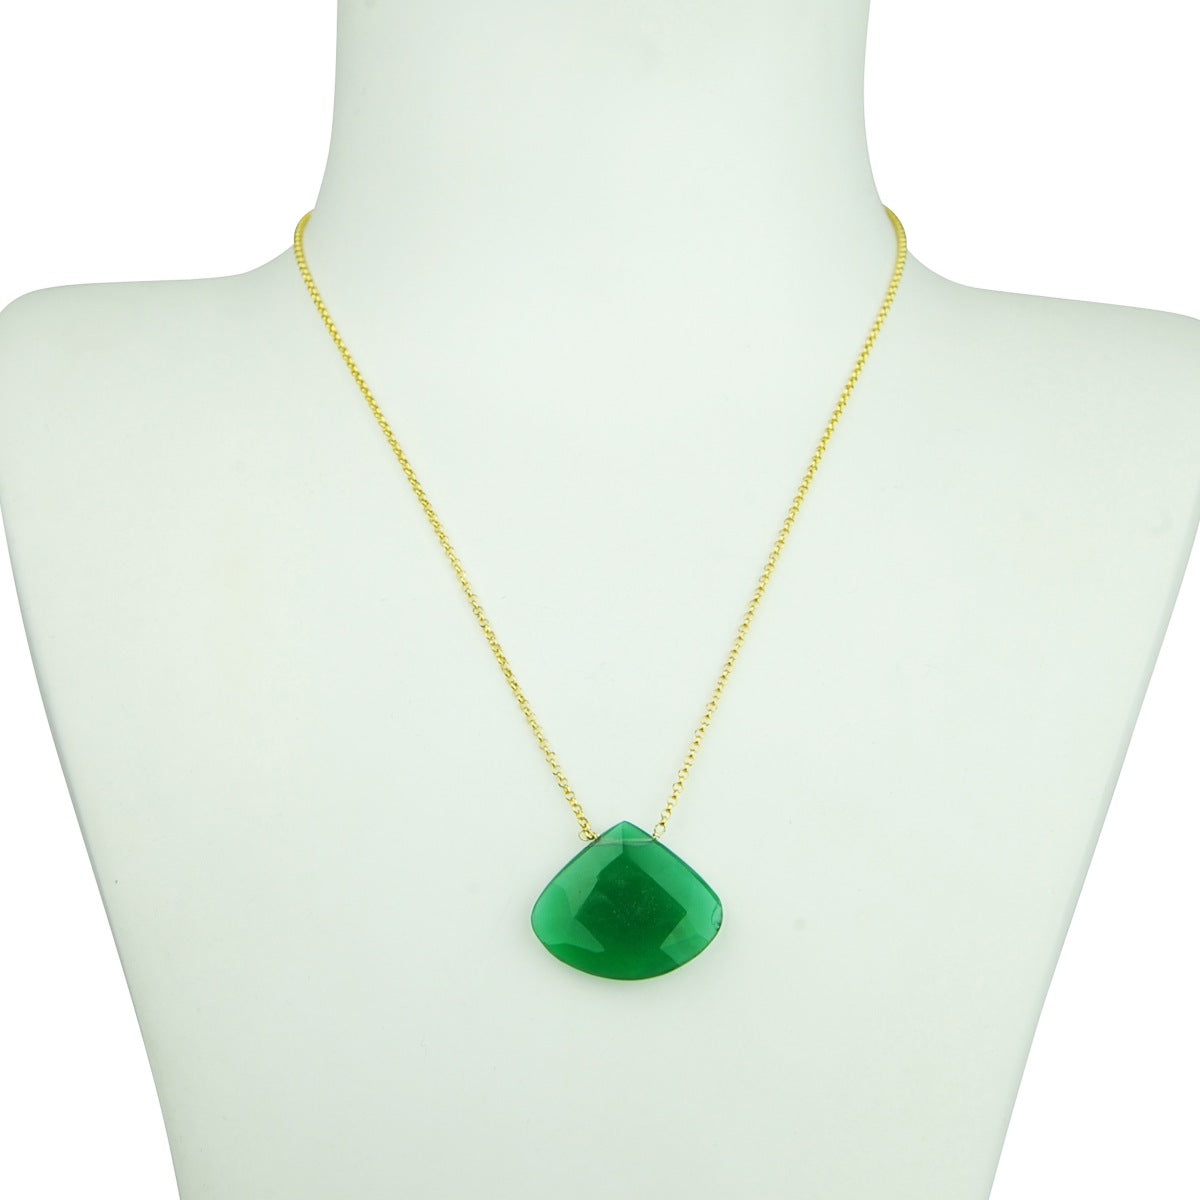 faceted semiprecious stones gold plated chain necklace katerina psoma